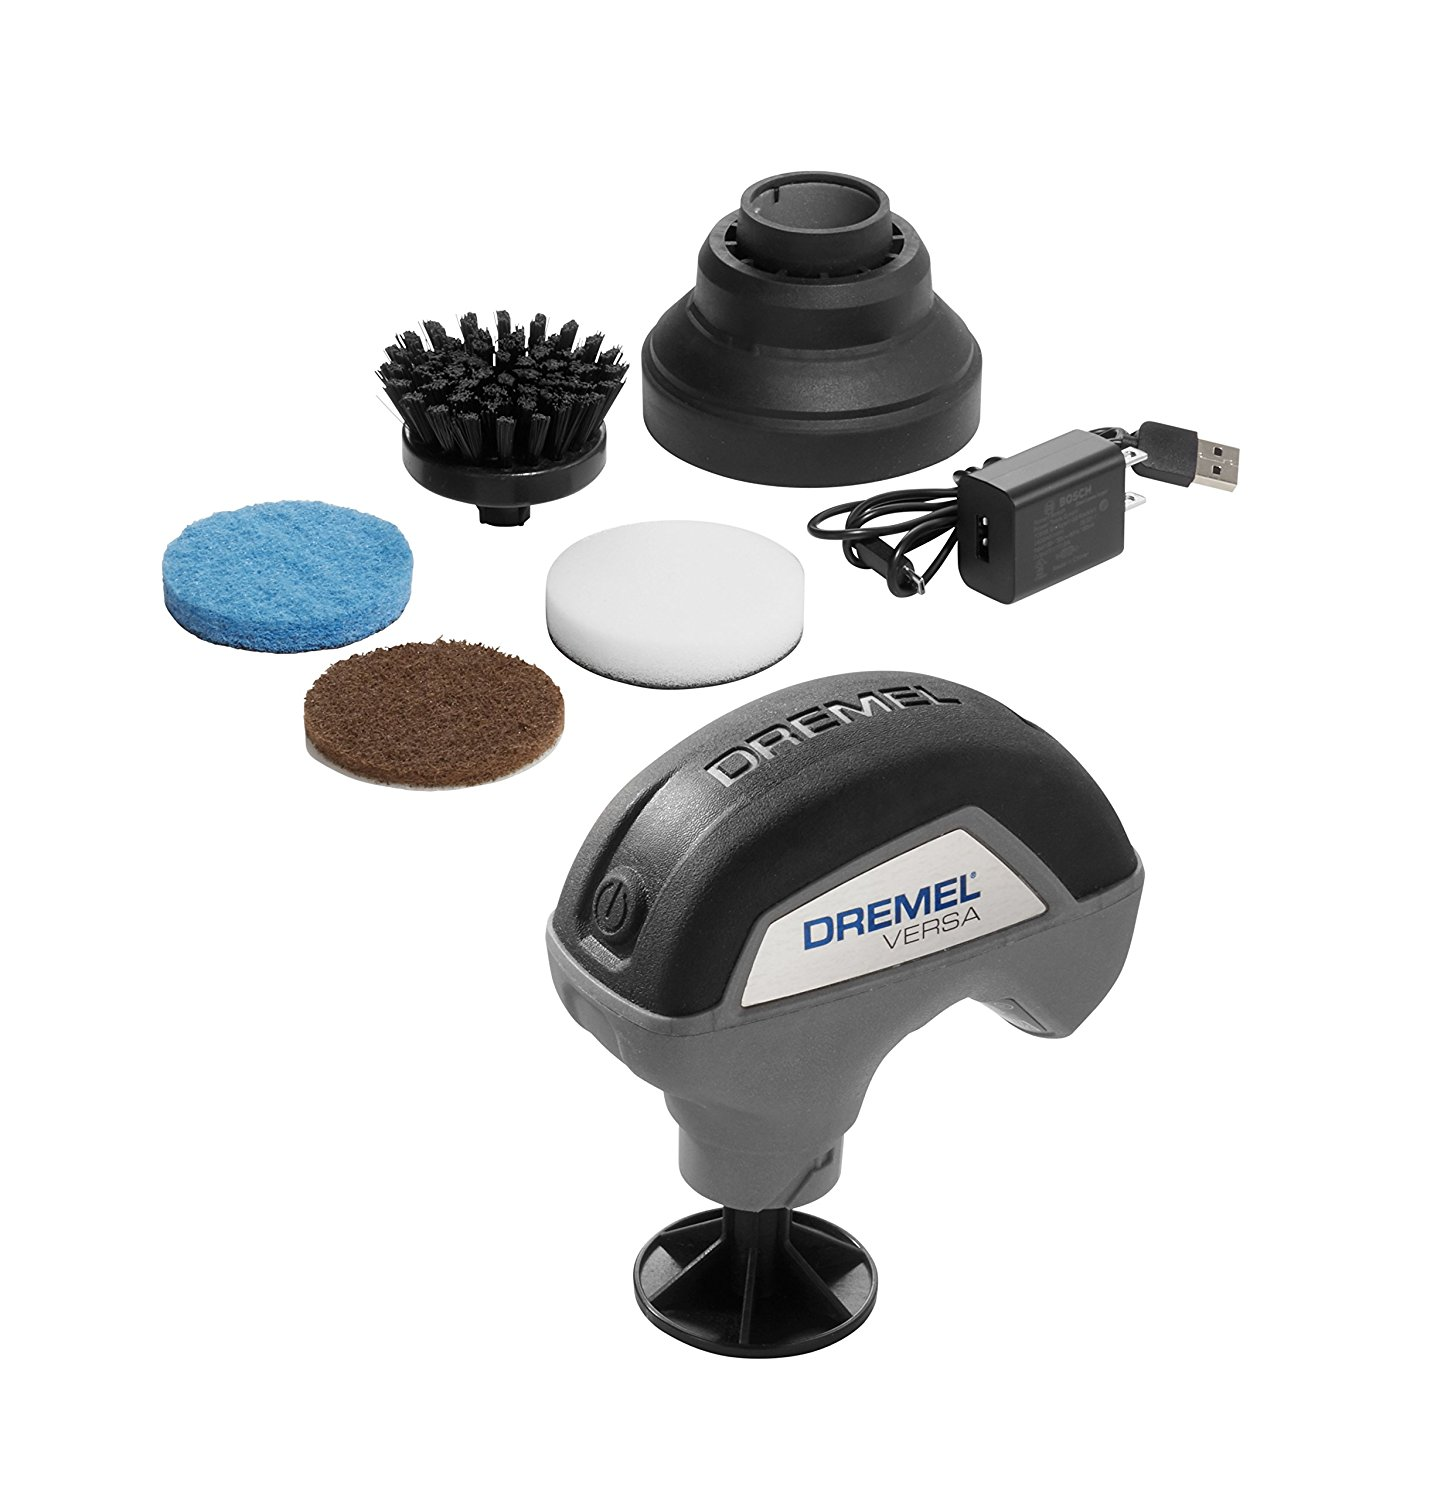 Dremel Versa 4V Cordless Power Scrubber Kit PC10-01